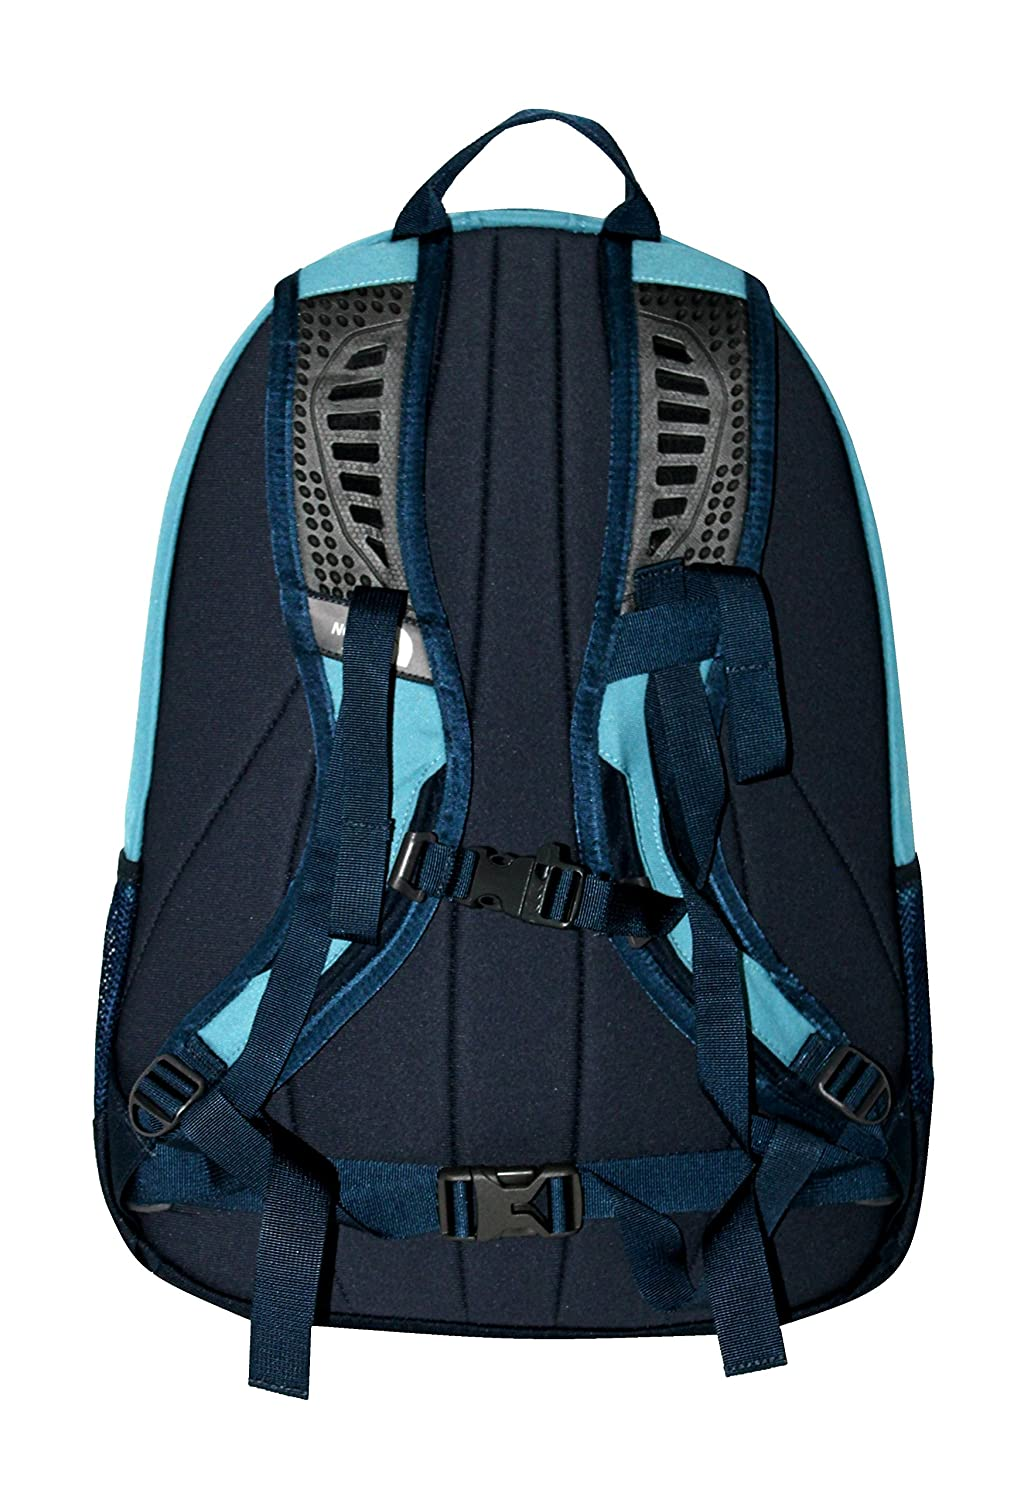 cfabb7cc70 North Face Jester Backpack Pink And Gray- Fenix Toulouse Handball